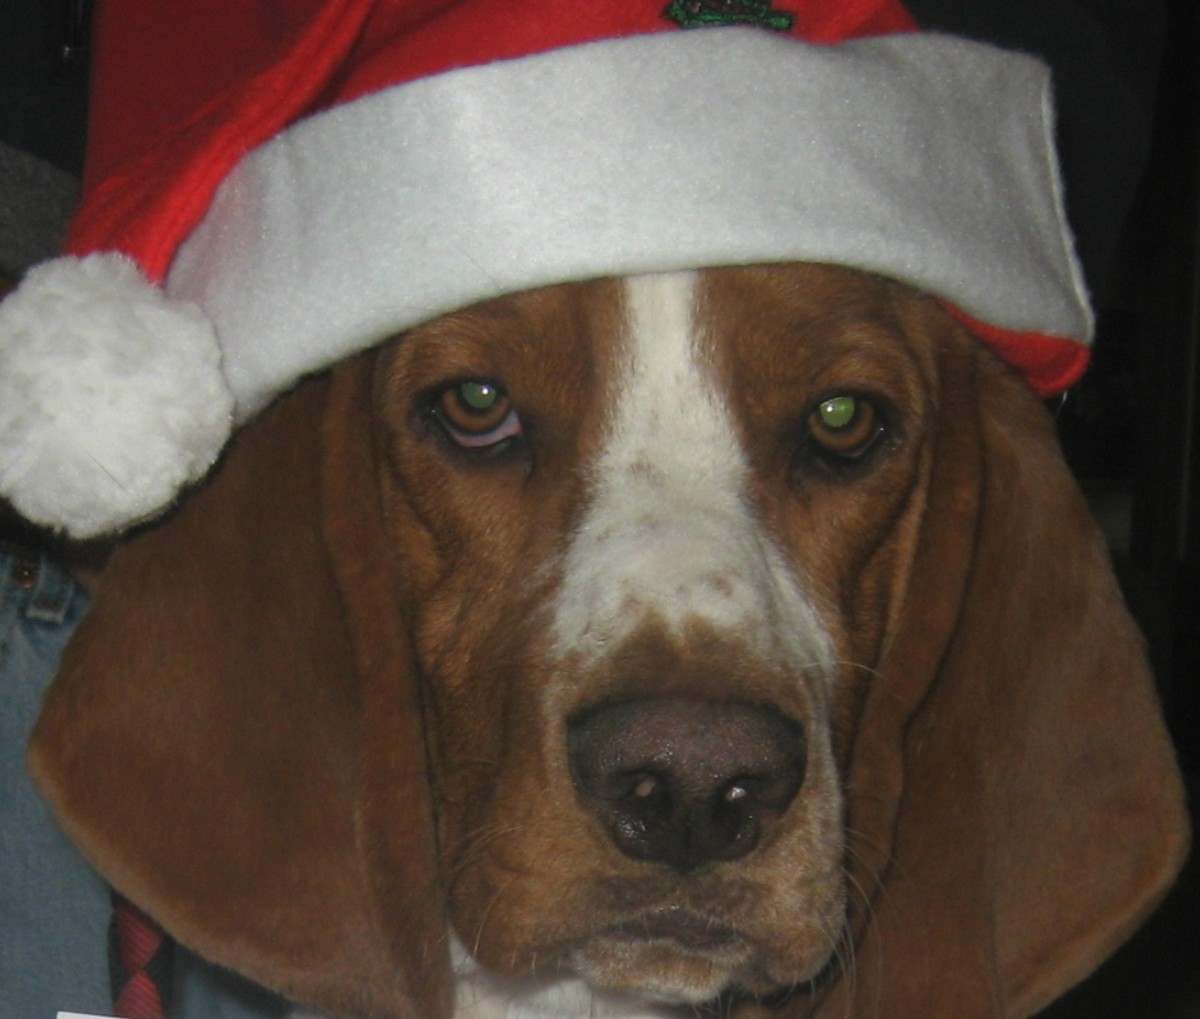 Basset hounds are sweet, non-aggressive dogs.